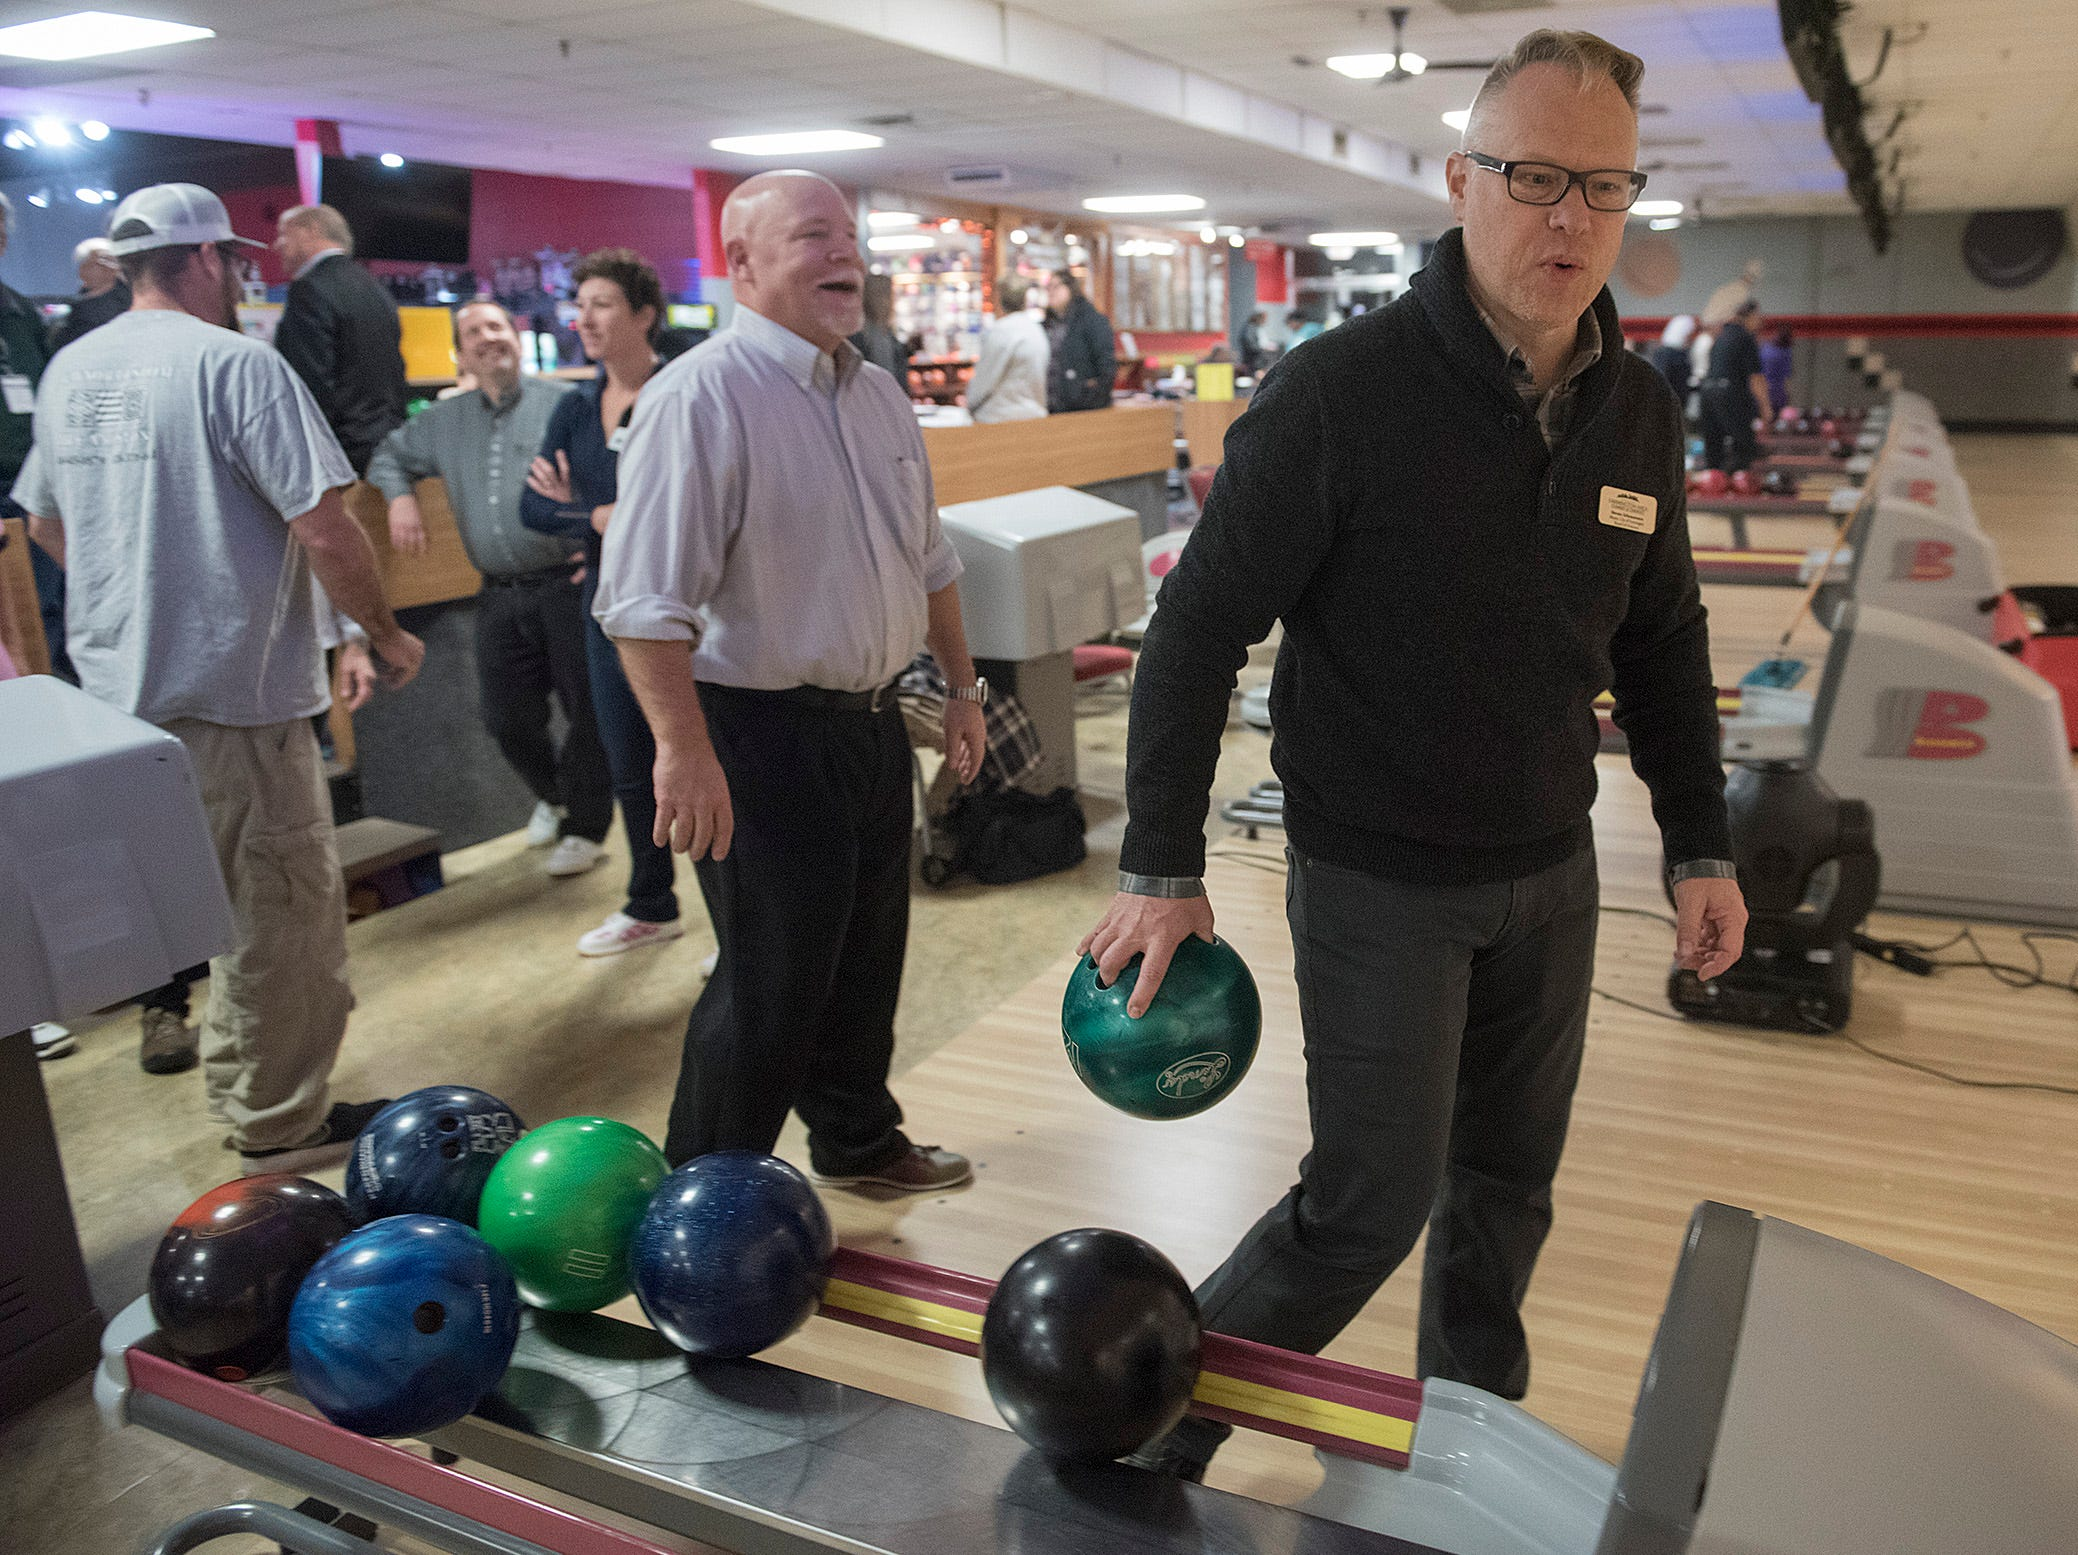 Farmington Mayor Steve Schneemann chooses his bowling ball and heads for his lane. Farmington Hills Mayor Ken Massey is right behind him.